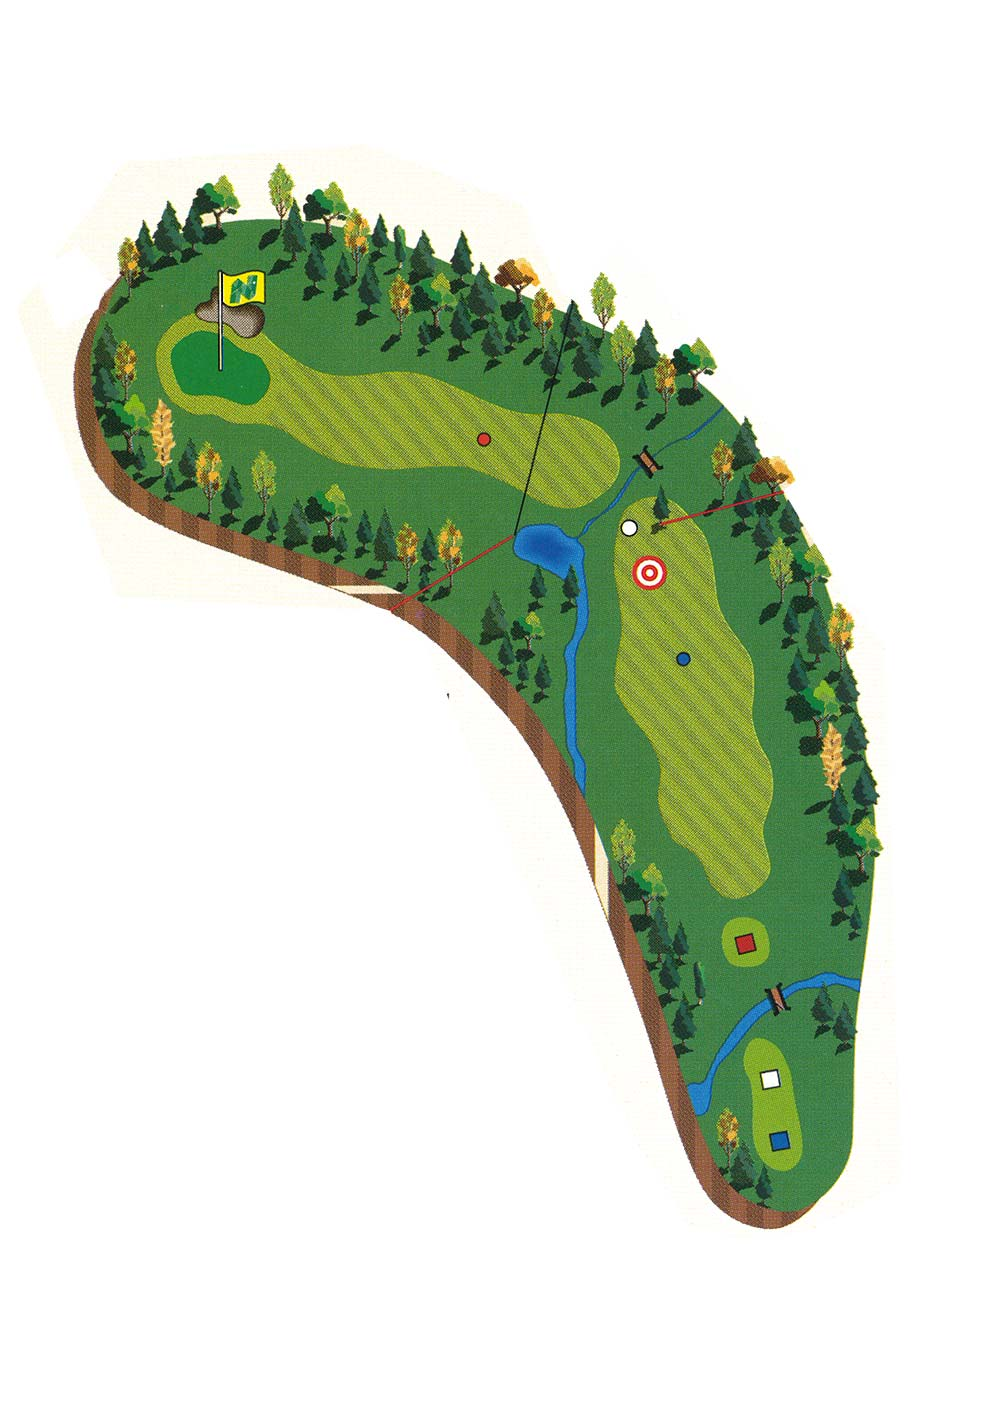 Course Description - Hole 8